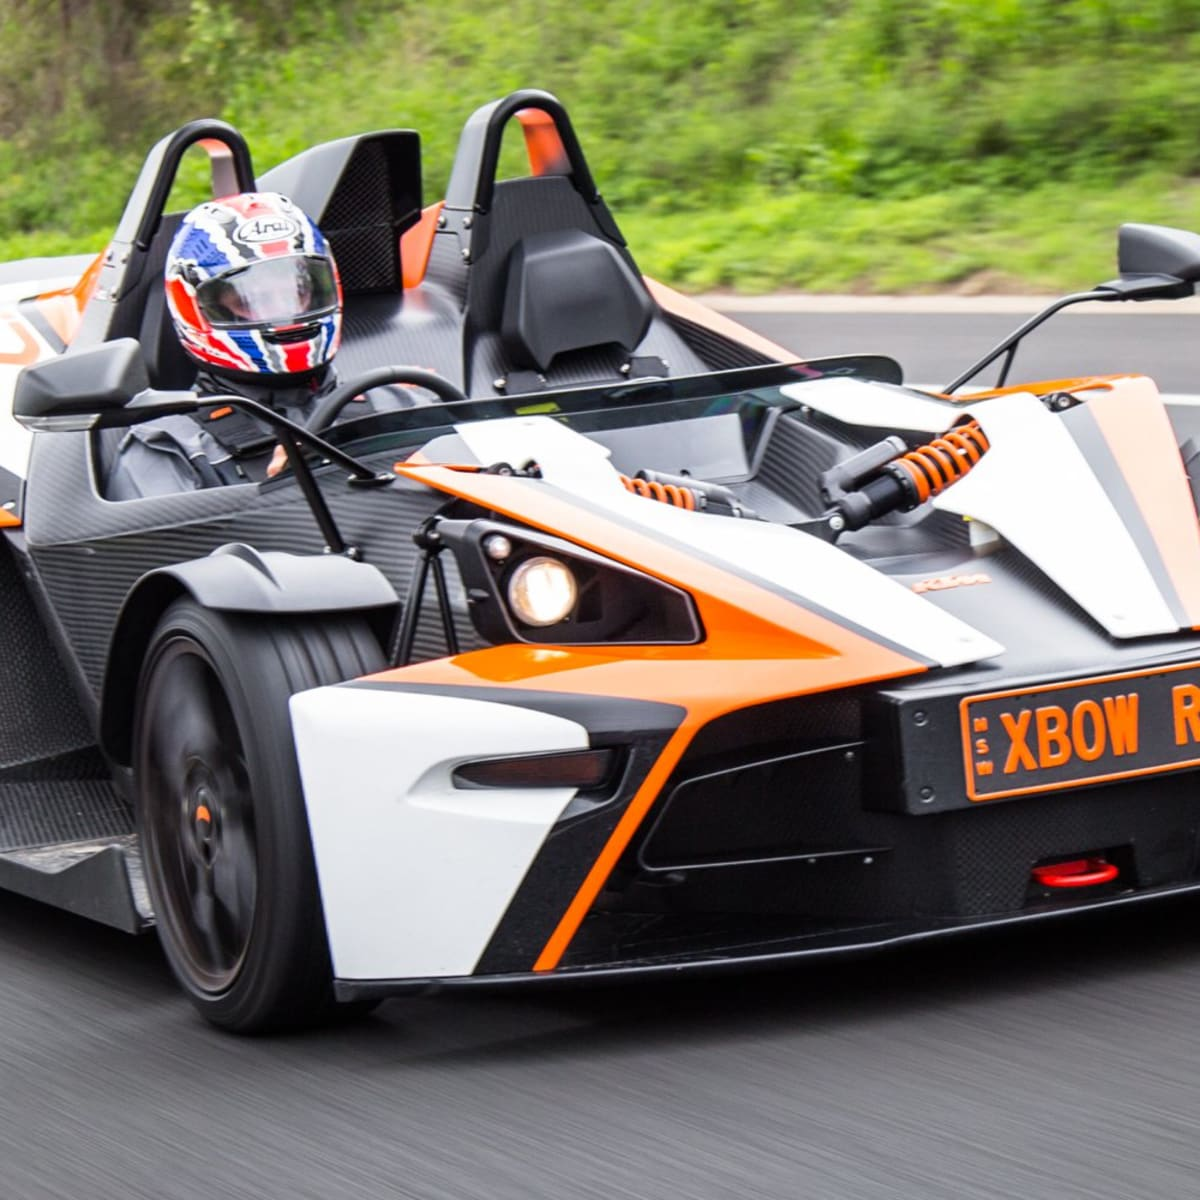 Ktm X Bow >> 2017 Ktm X Bow Review Caradvice